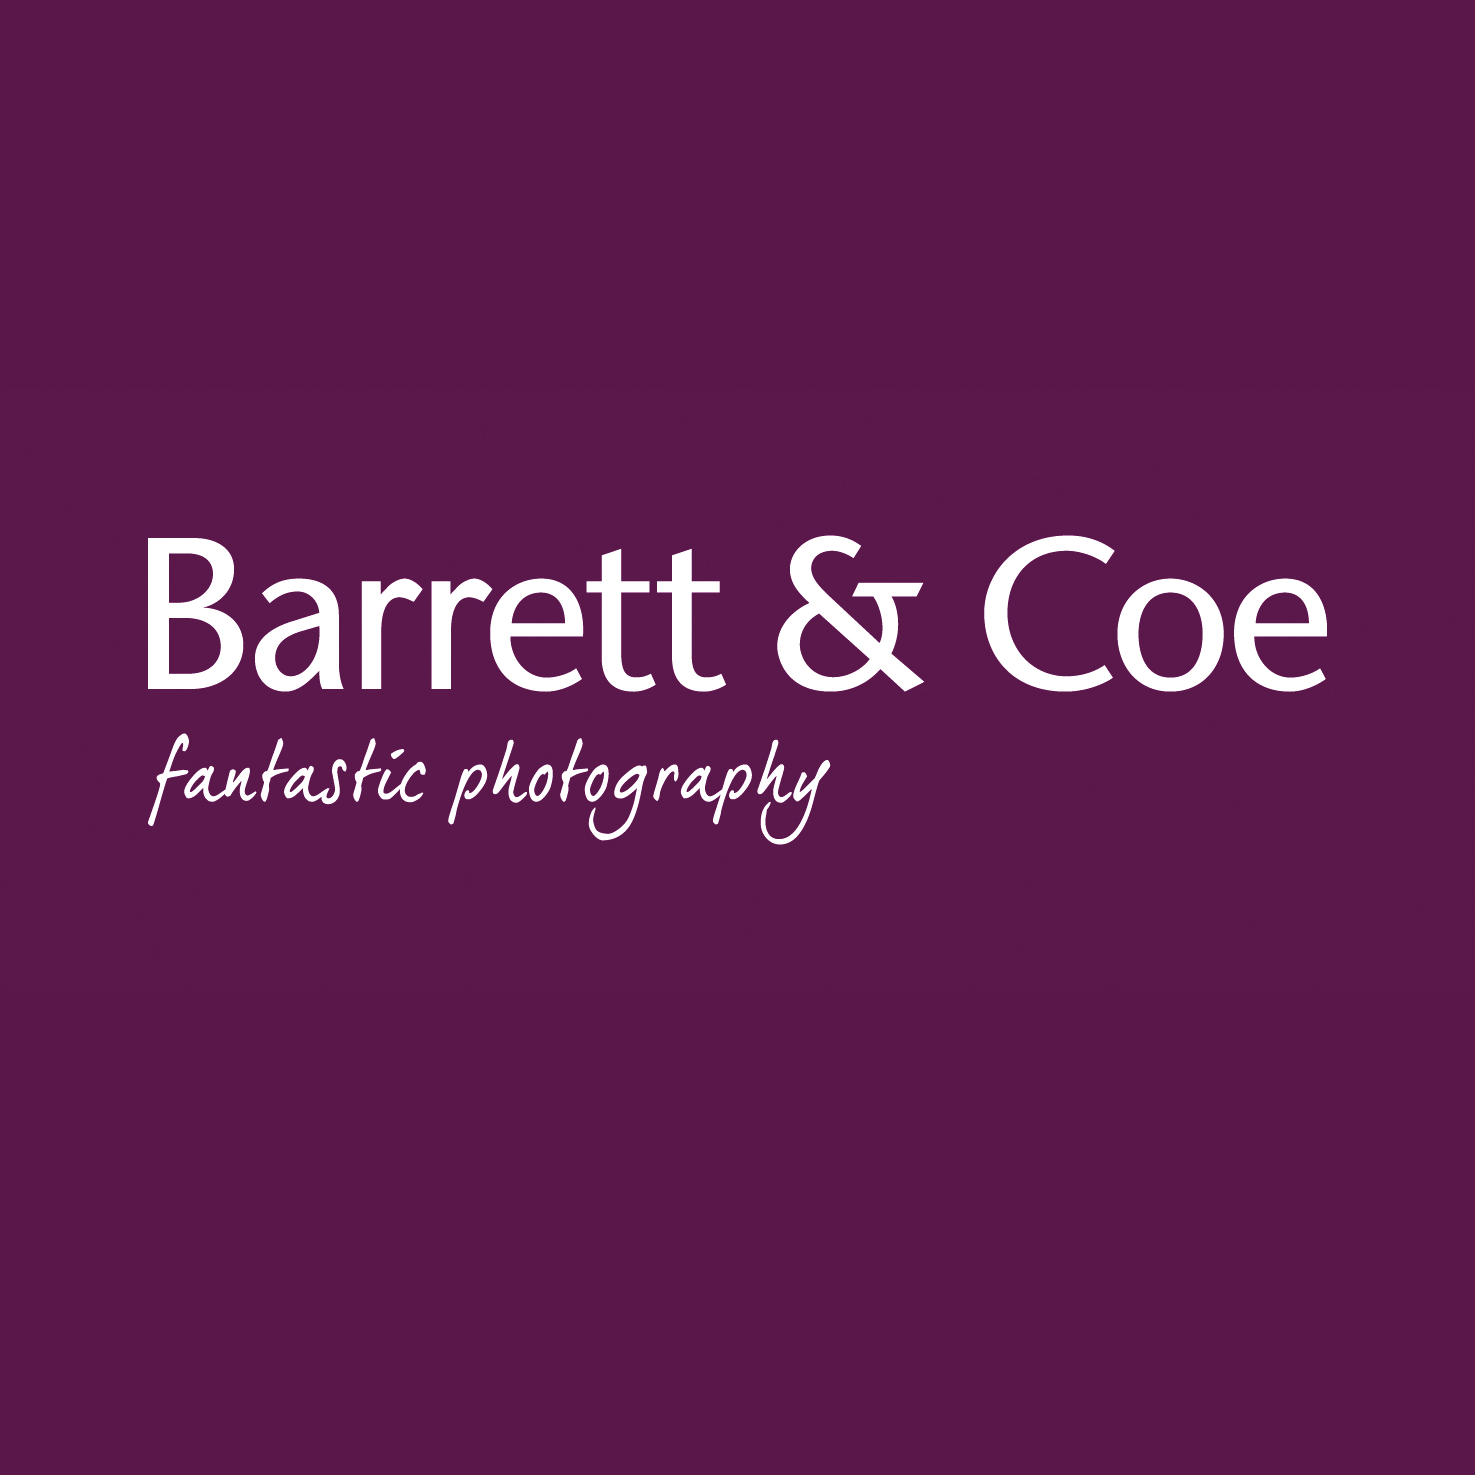 Barrett And Coe franchise